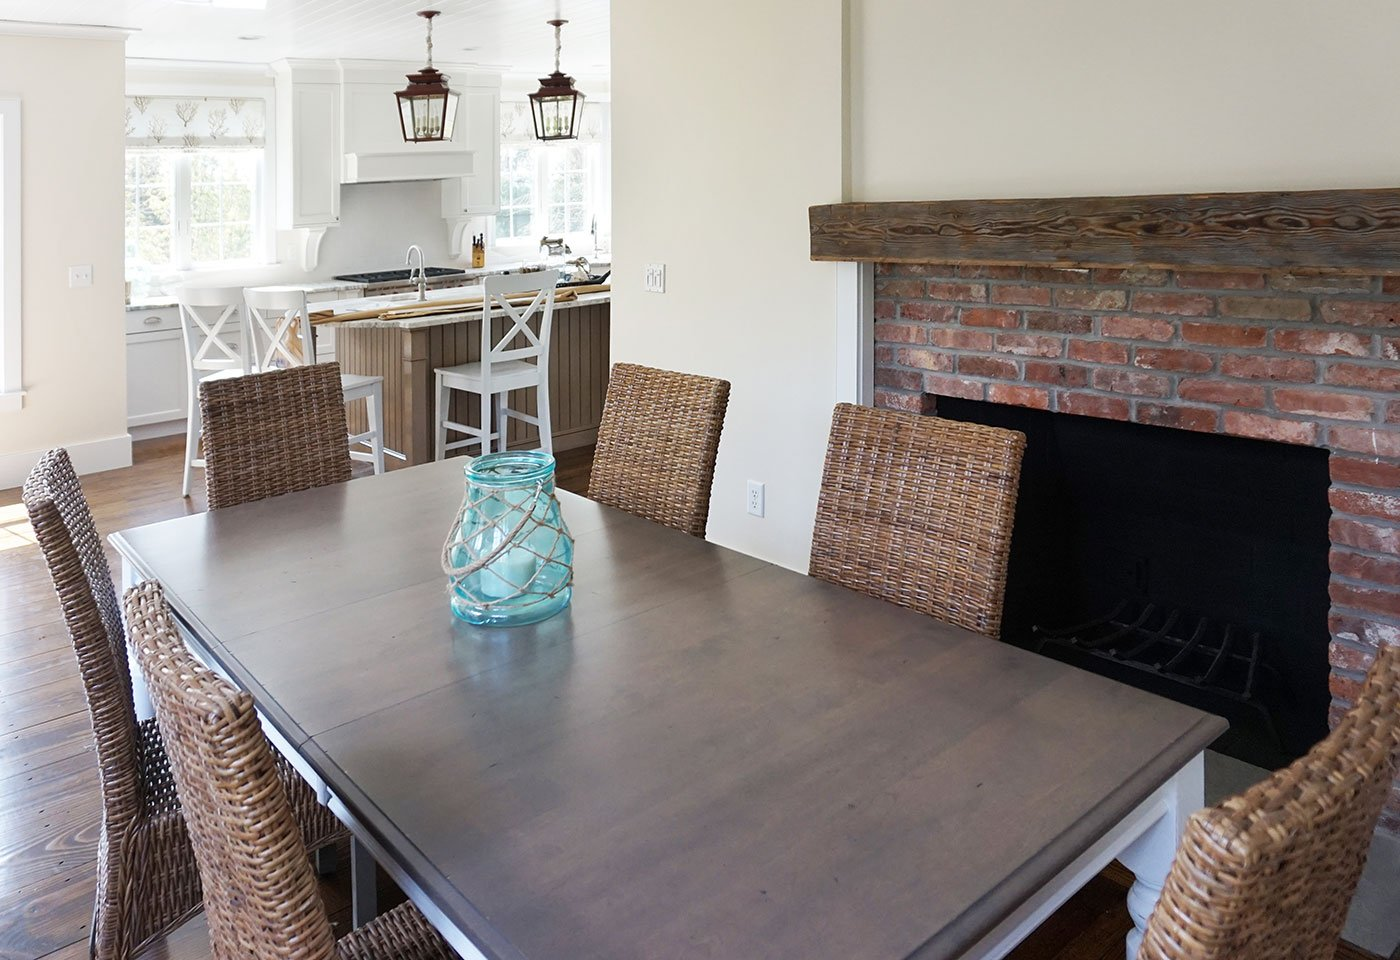 2 Rustic home renovation by in house design - construction build firm in RI